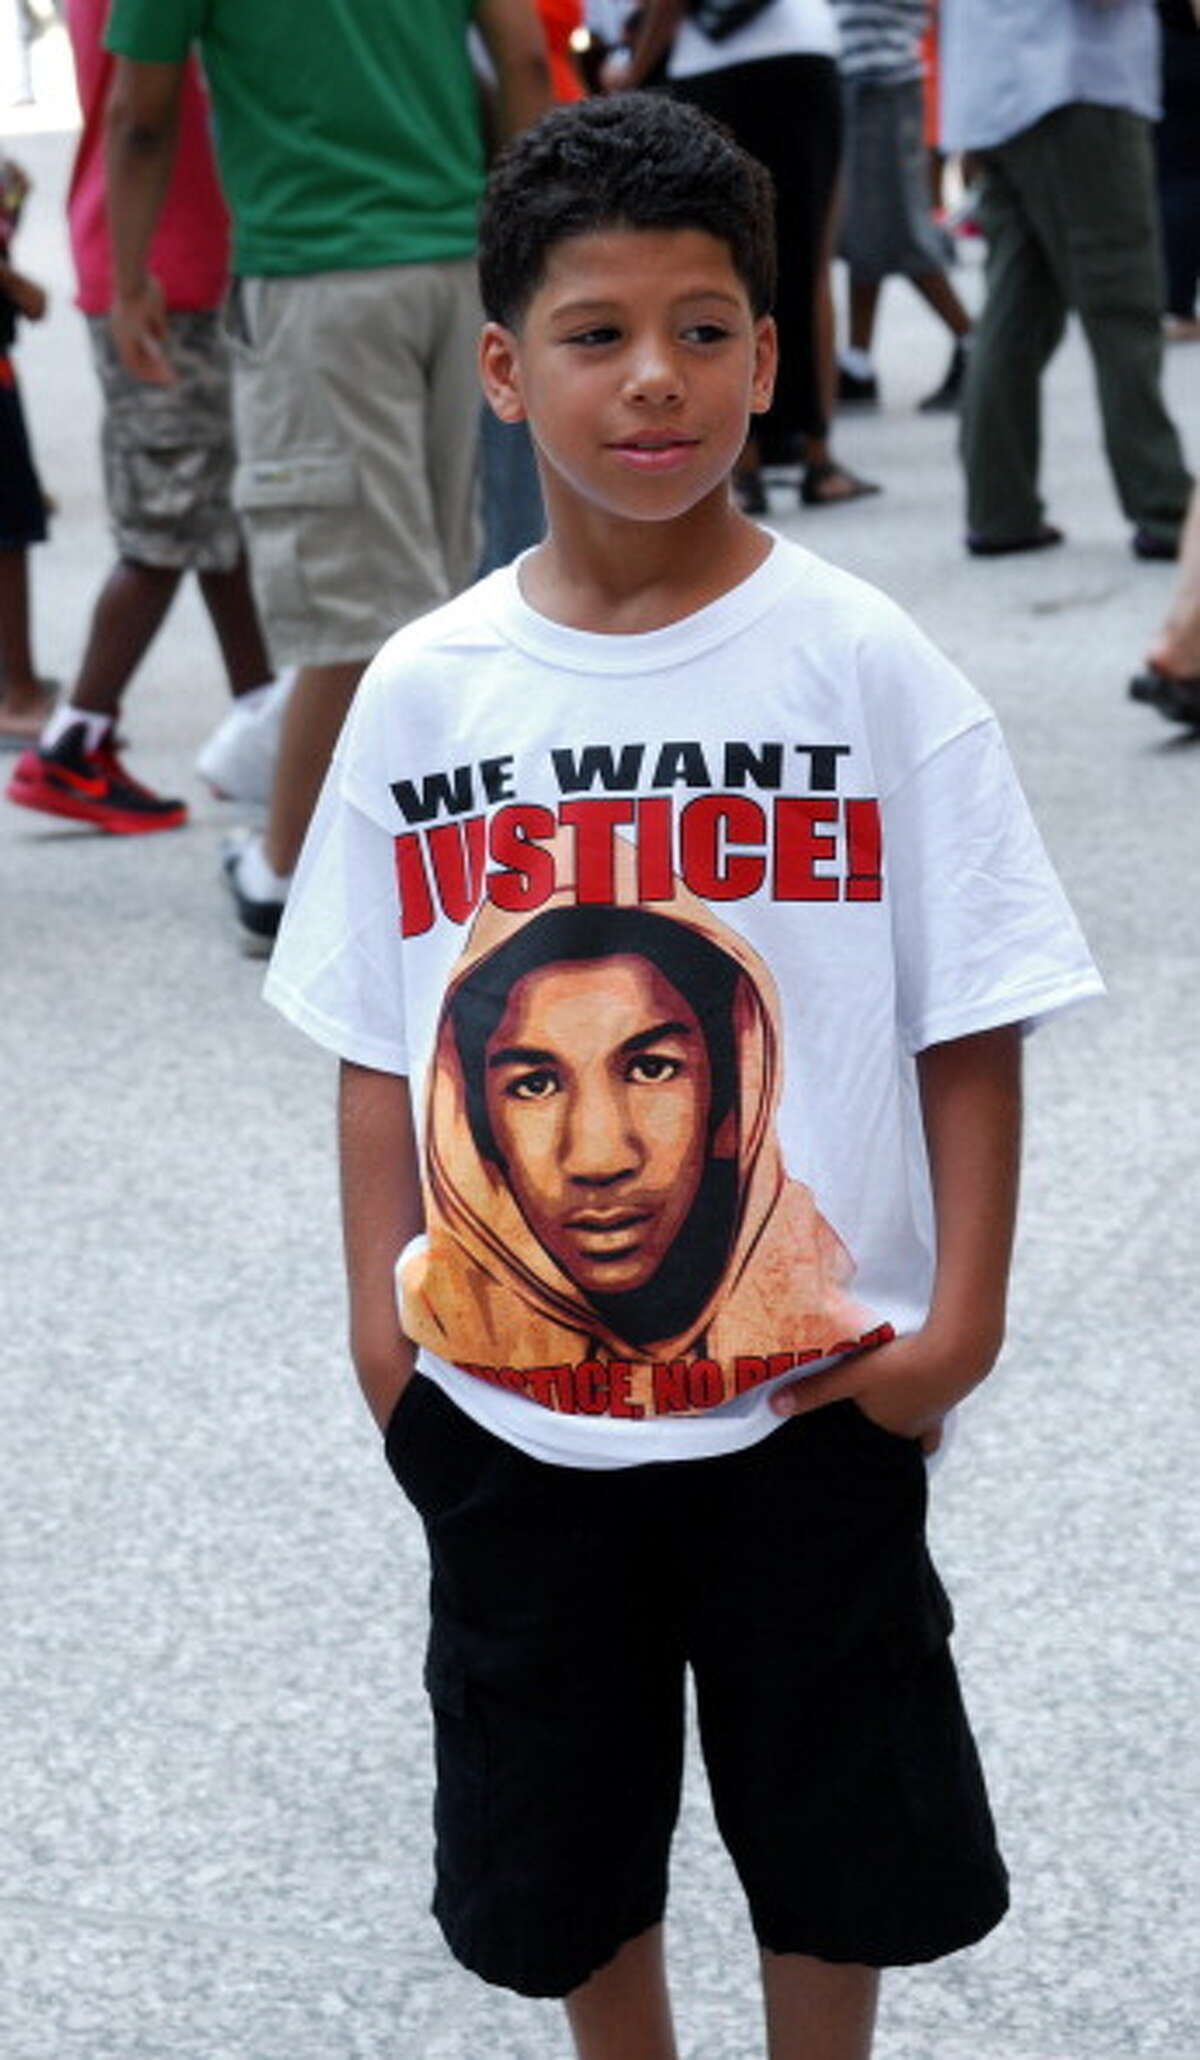 Trayvon Martin (pictured on shirt) ranks in at number 9 US trending people.